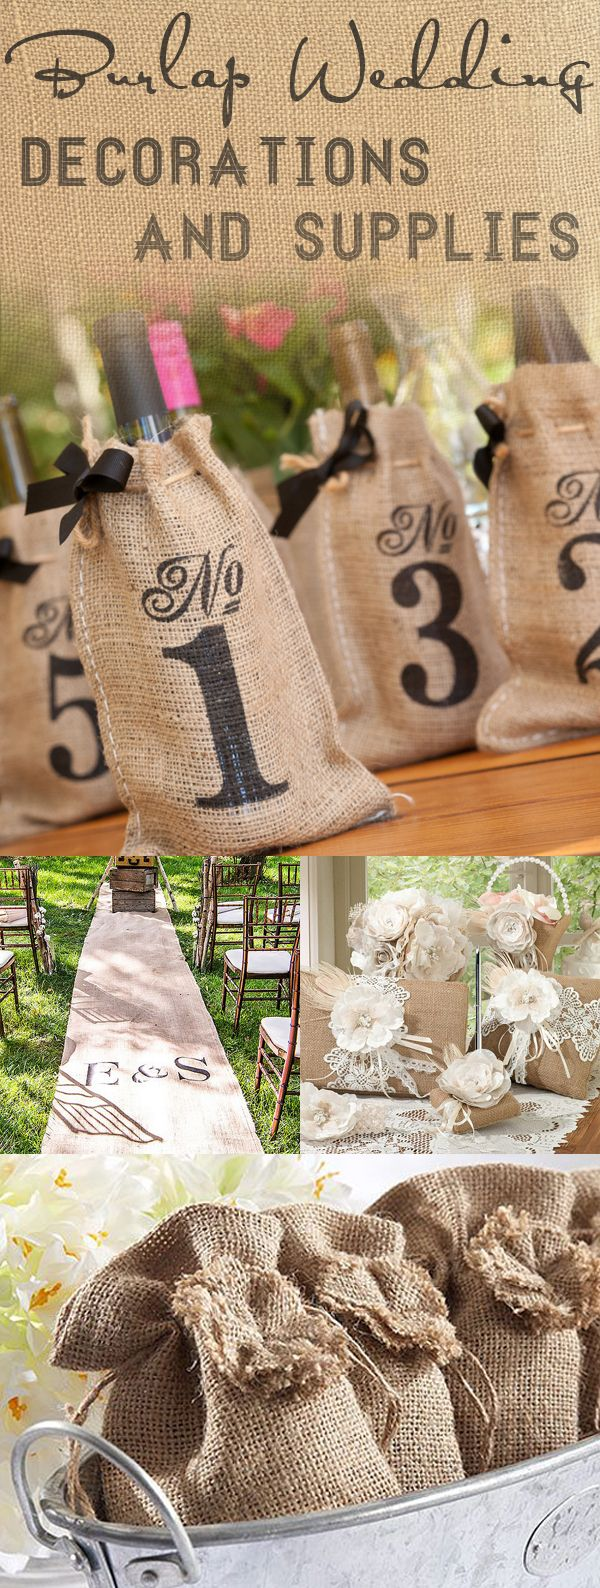 Find the perfect rustic inspiration for your wedding with these burlap wedding decorations and supplies. From table number wine bags to favor boxes and aisle runners, don't miss a single detail for your rustic or shabby chic wedding!